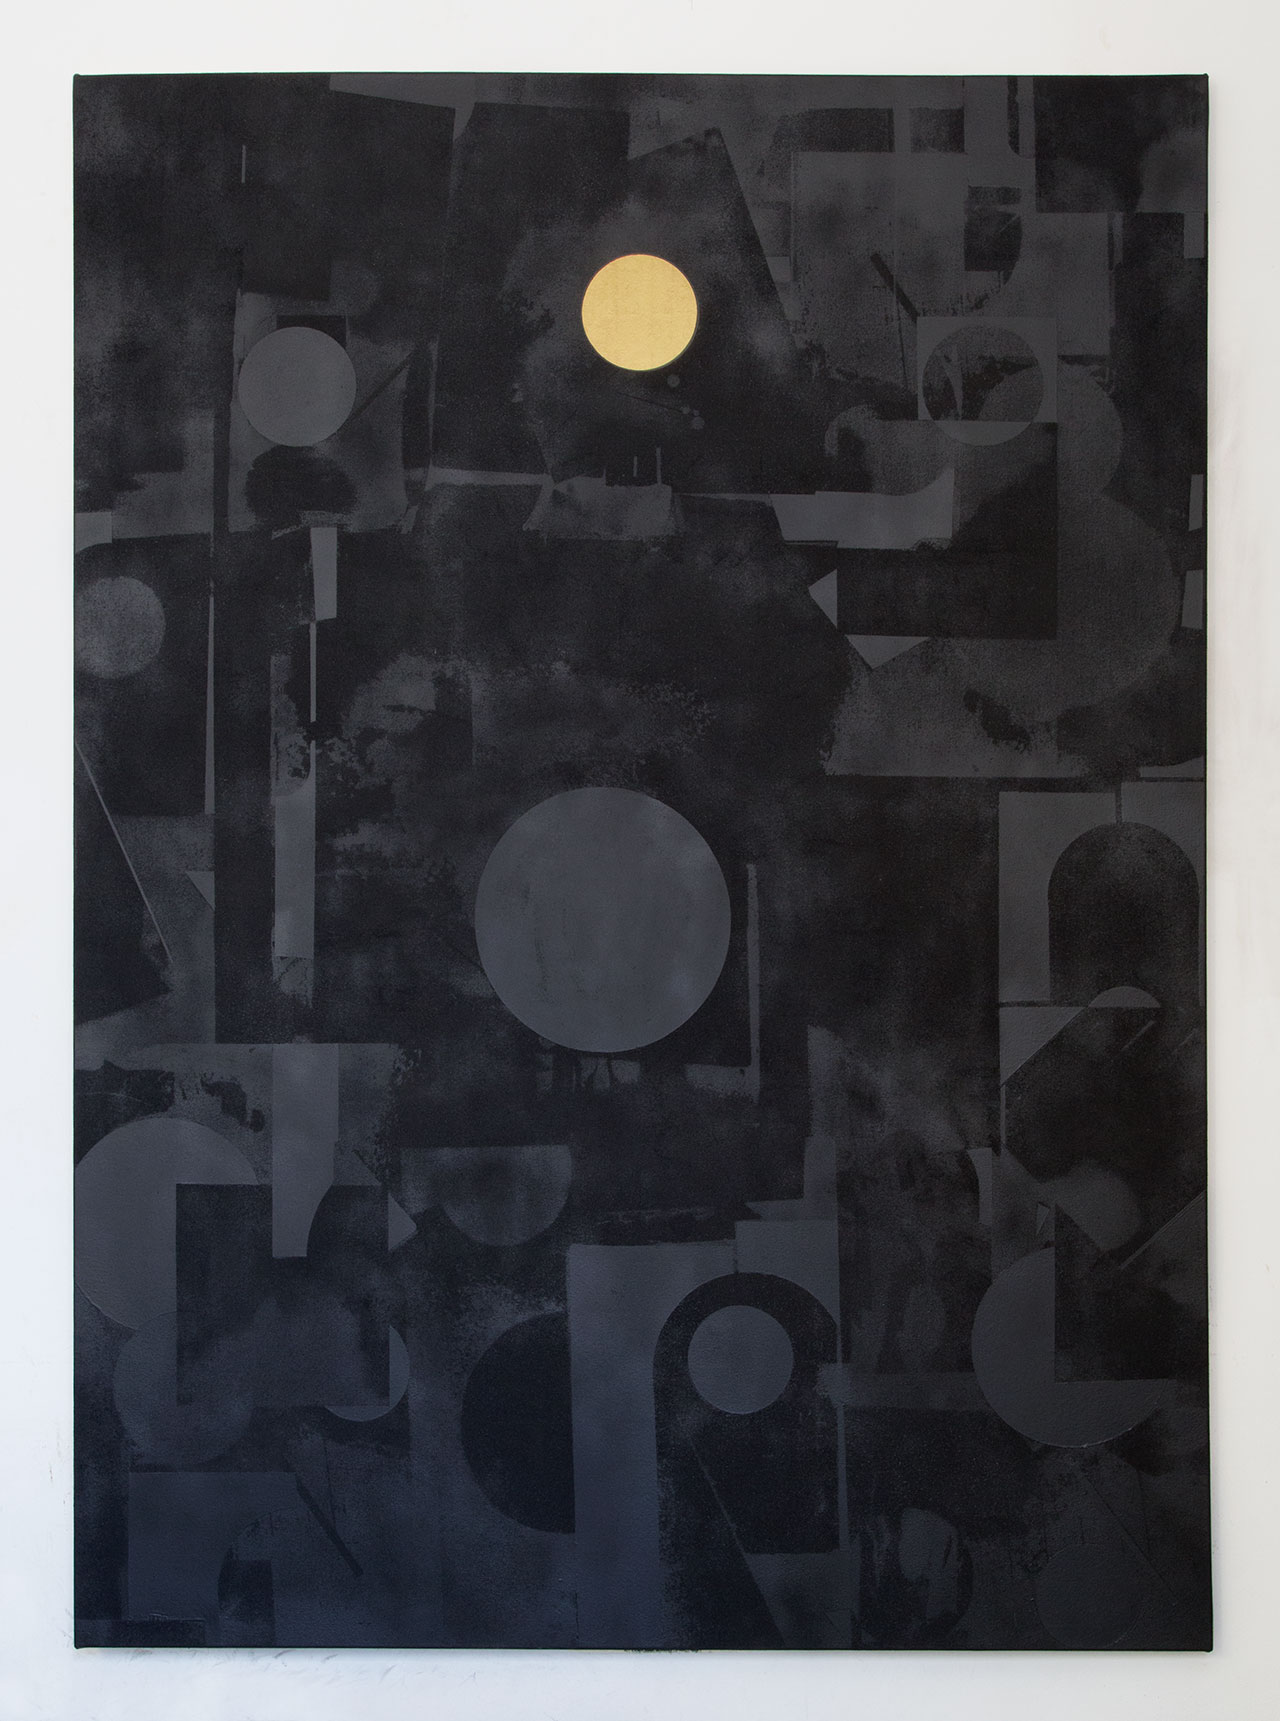 Panos Tsagaris, The Soul of the Sun,gold leaf, acrylic paint, spray paint and silkscreen on canvas, 180x130 cm, 2016.Courtesy of the artist and Kalfayan Galleries, Athens-Thessaloniki.